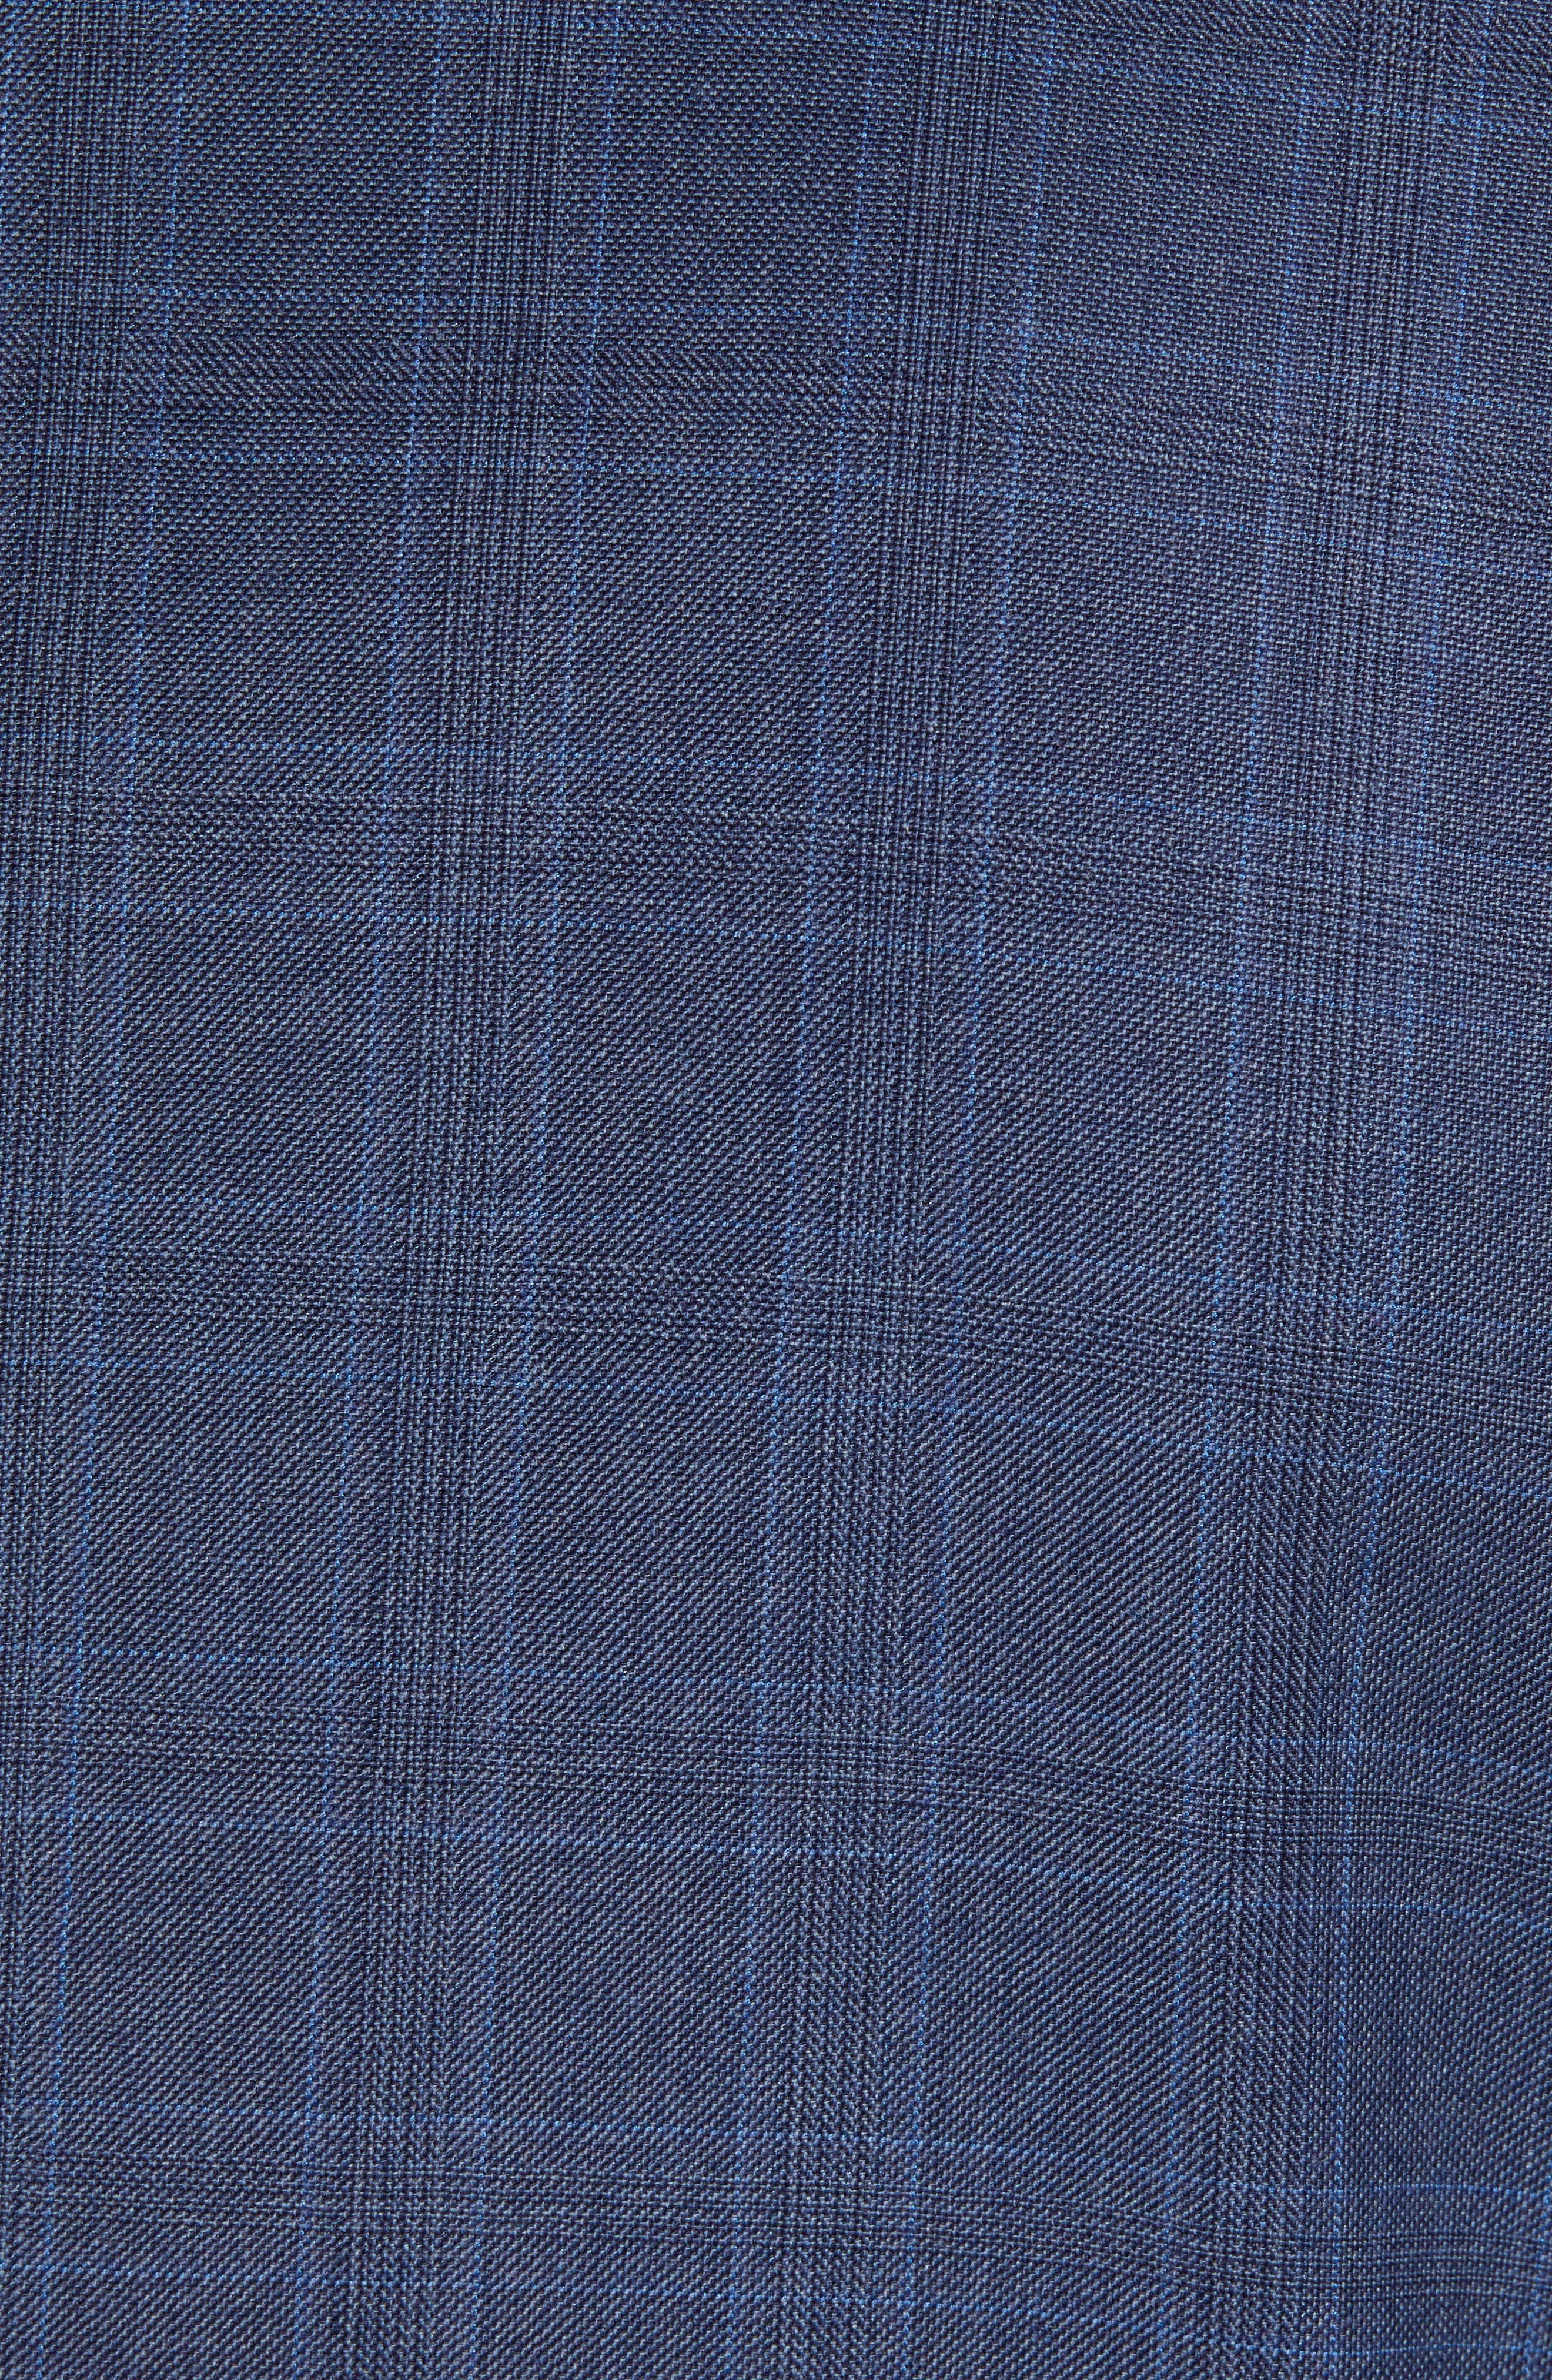 New York Classic Fit Plaid Wool Suit,                             Alternate thumbnail 7, color,                             MED BLUE